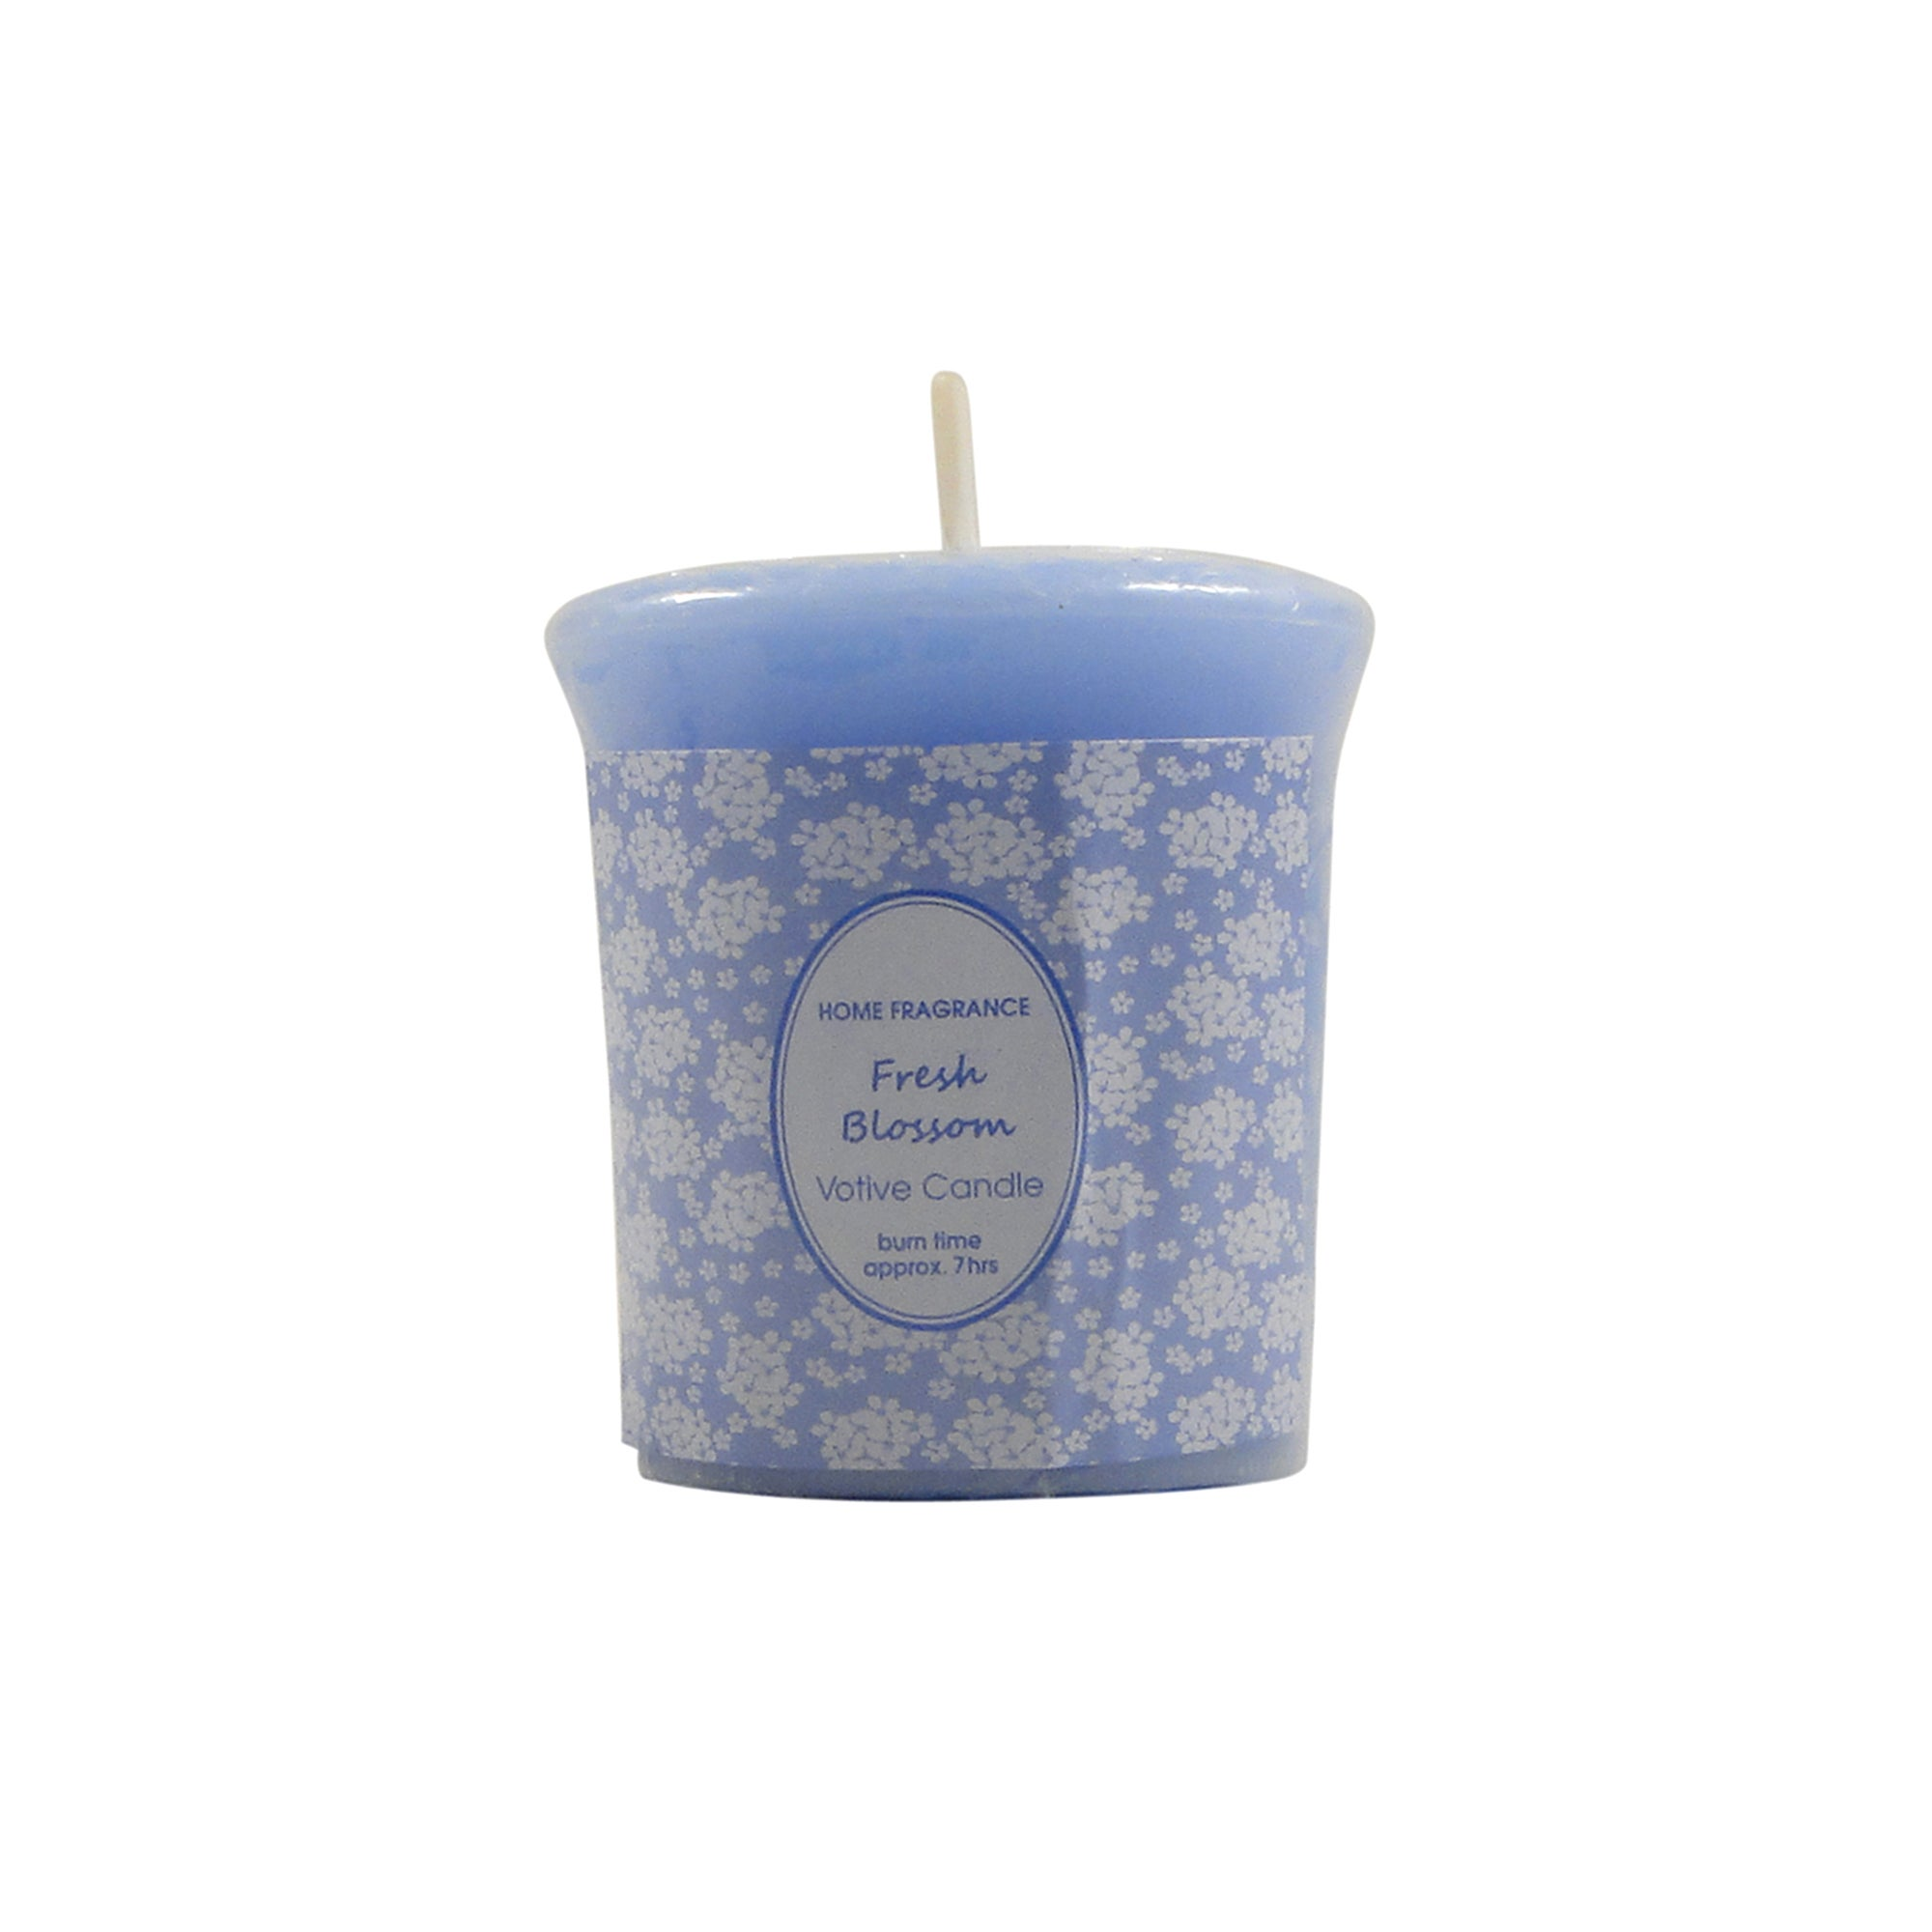 Home Fragrance Fresh Blossom Votive Candle